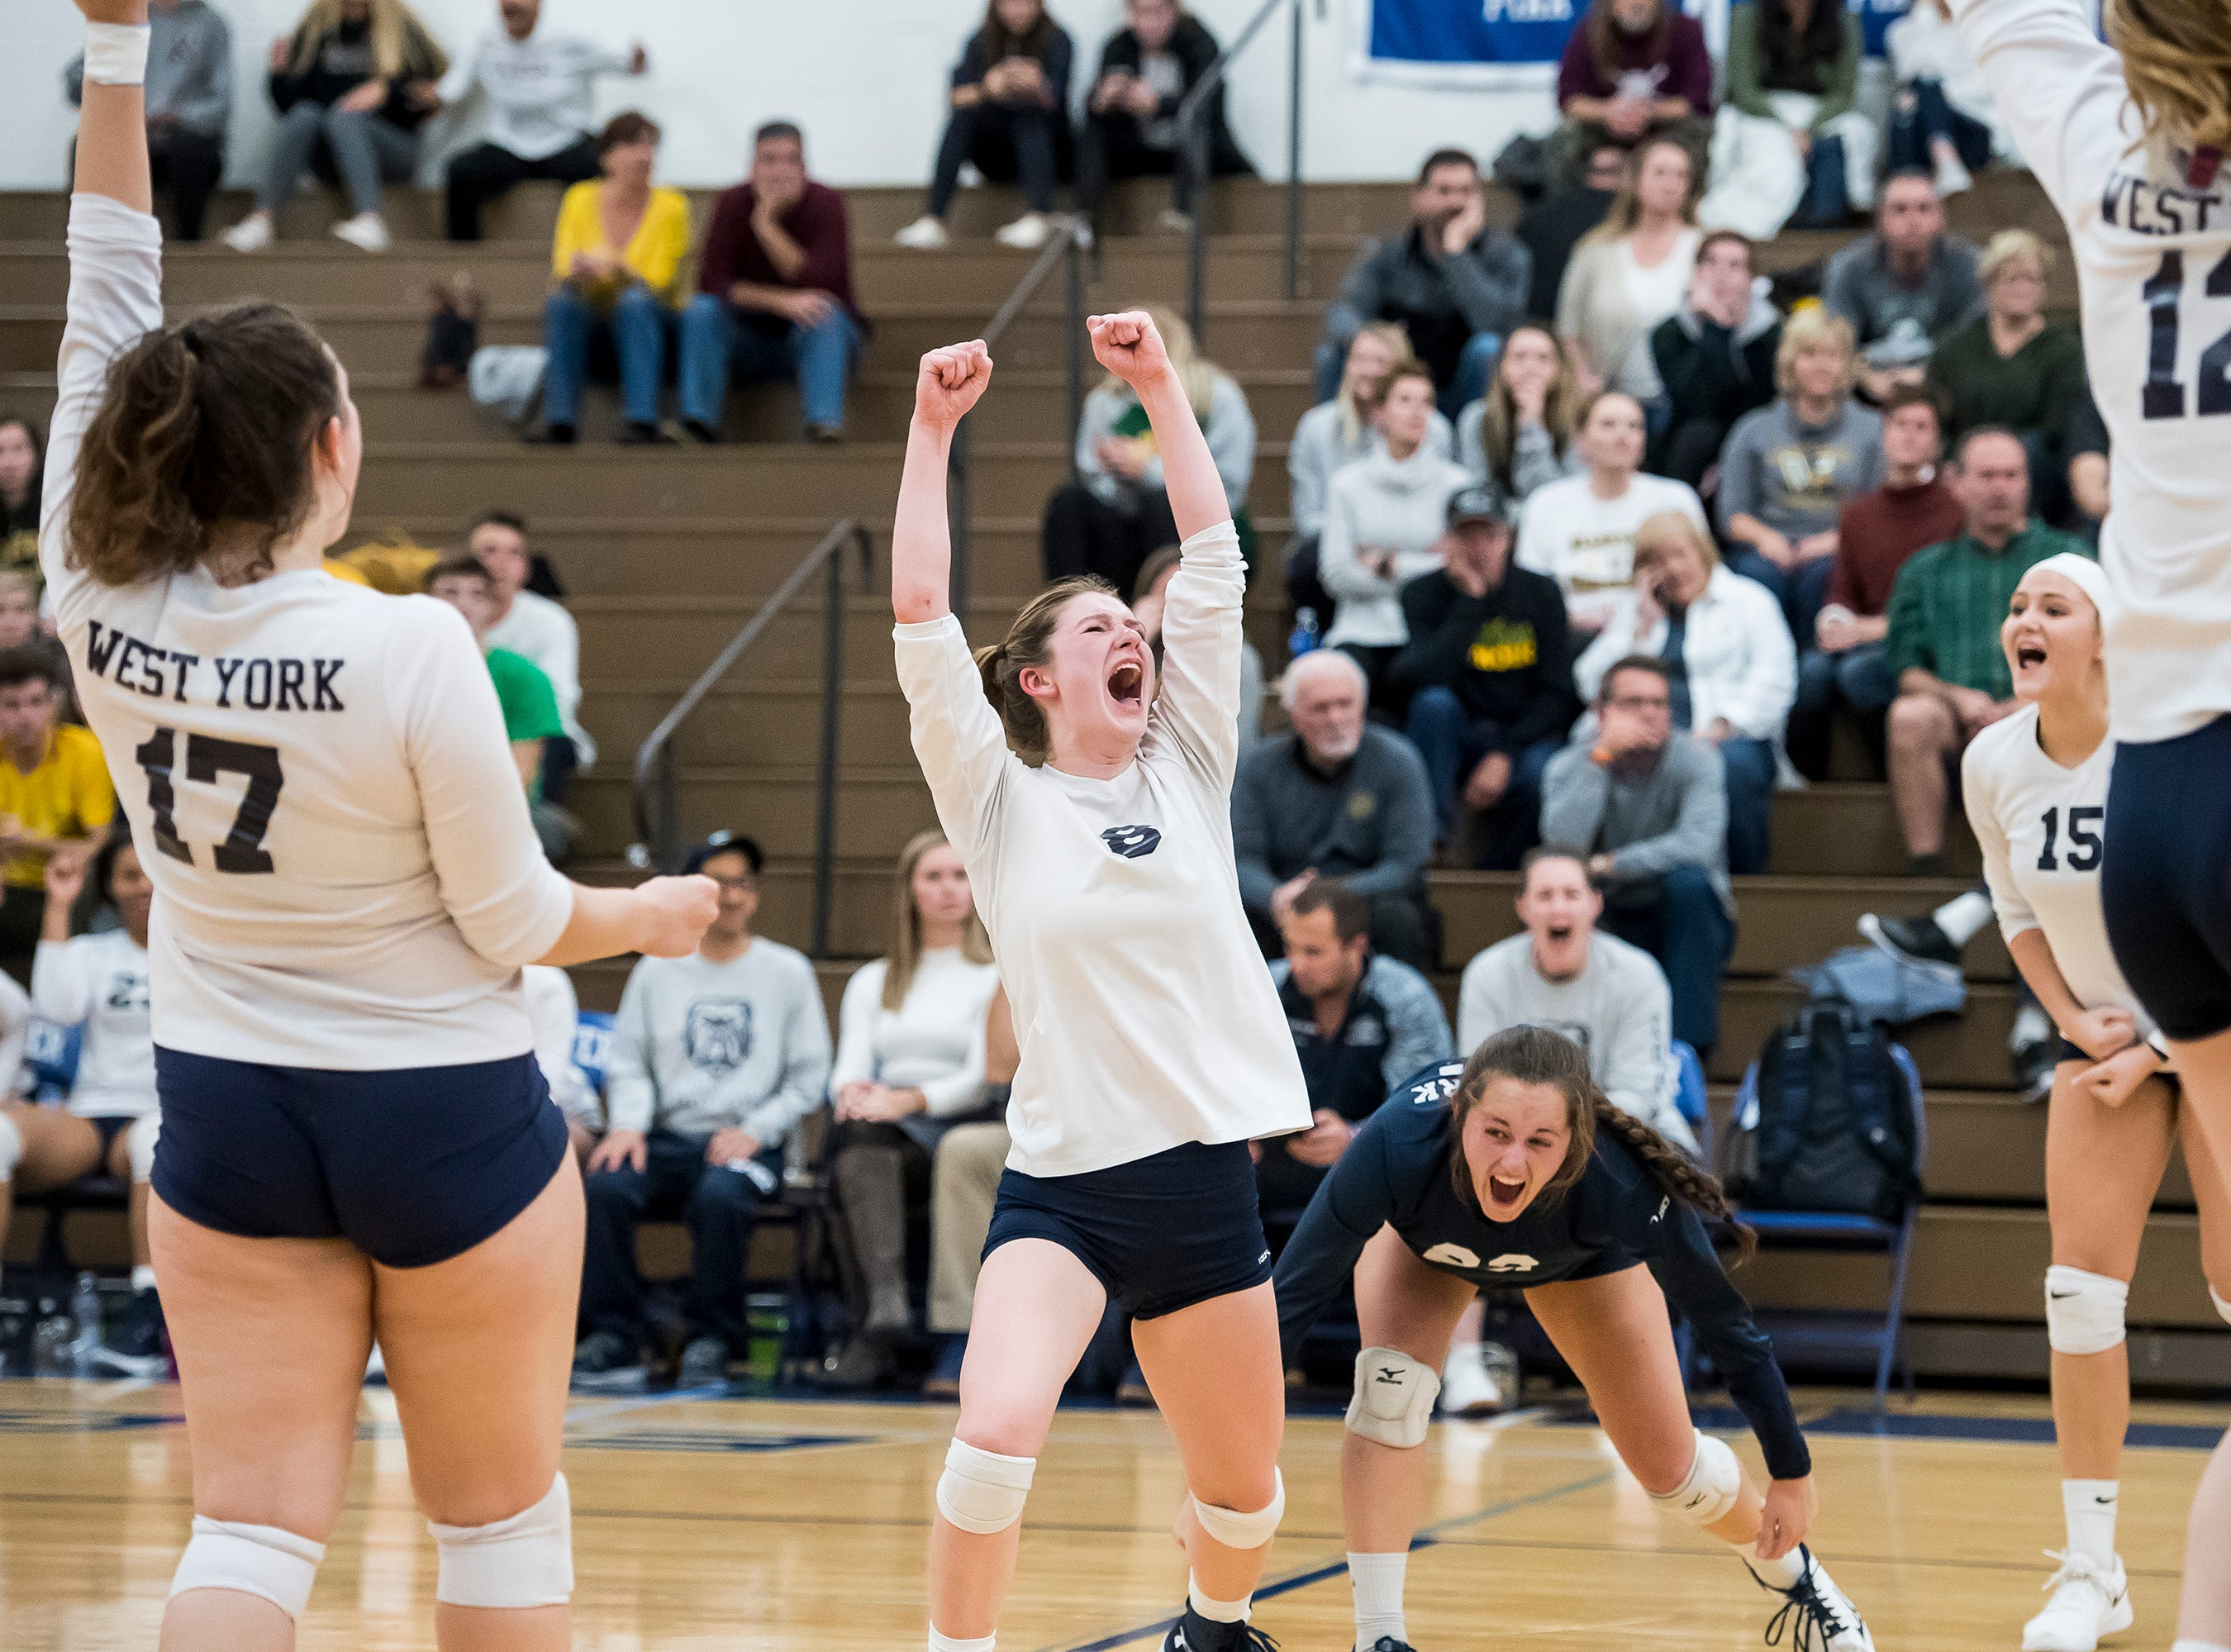 West York celebrate after scoring a point late in the fourth set against Allentown Central Catholic in a PIAA 3A semifinal game at Exeter Township High School in Reading on Tuesday, November 13, 2018.